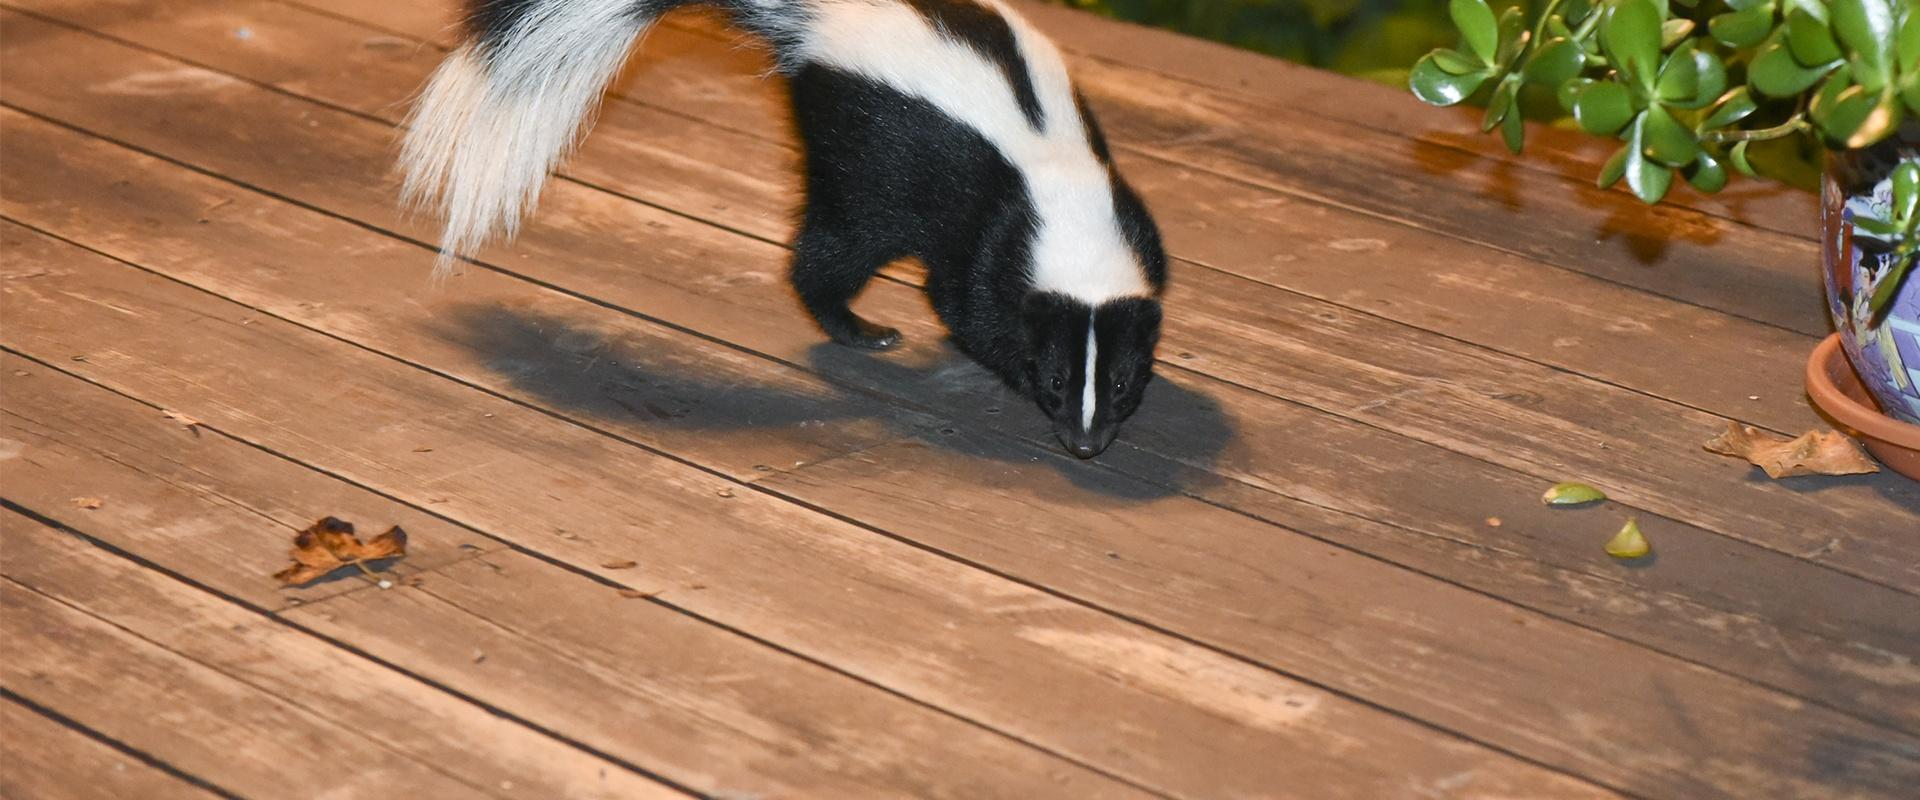 a skunk on a homes patio